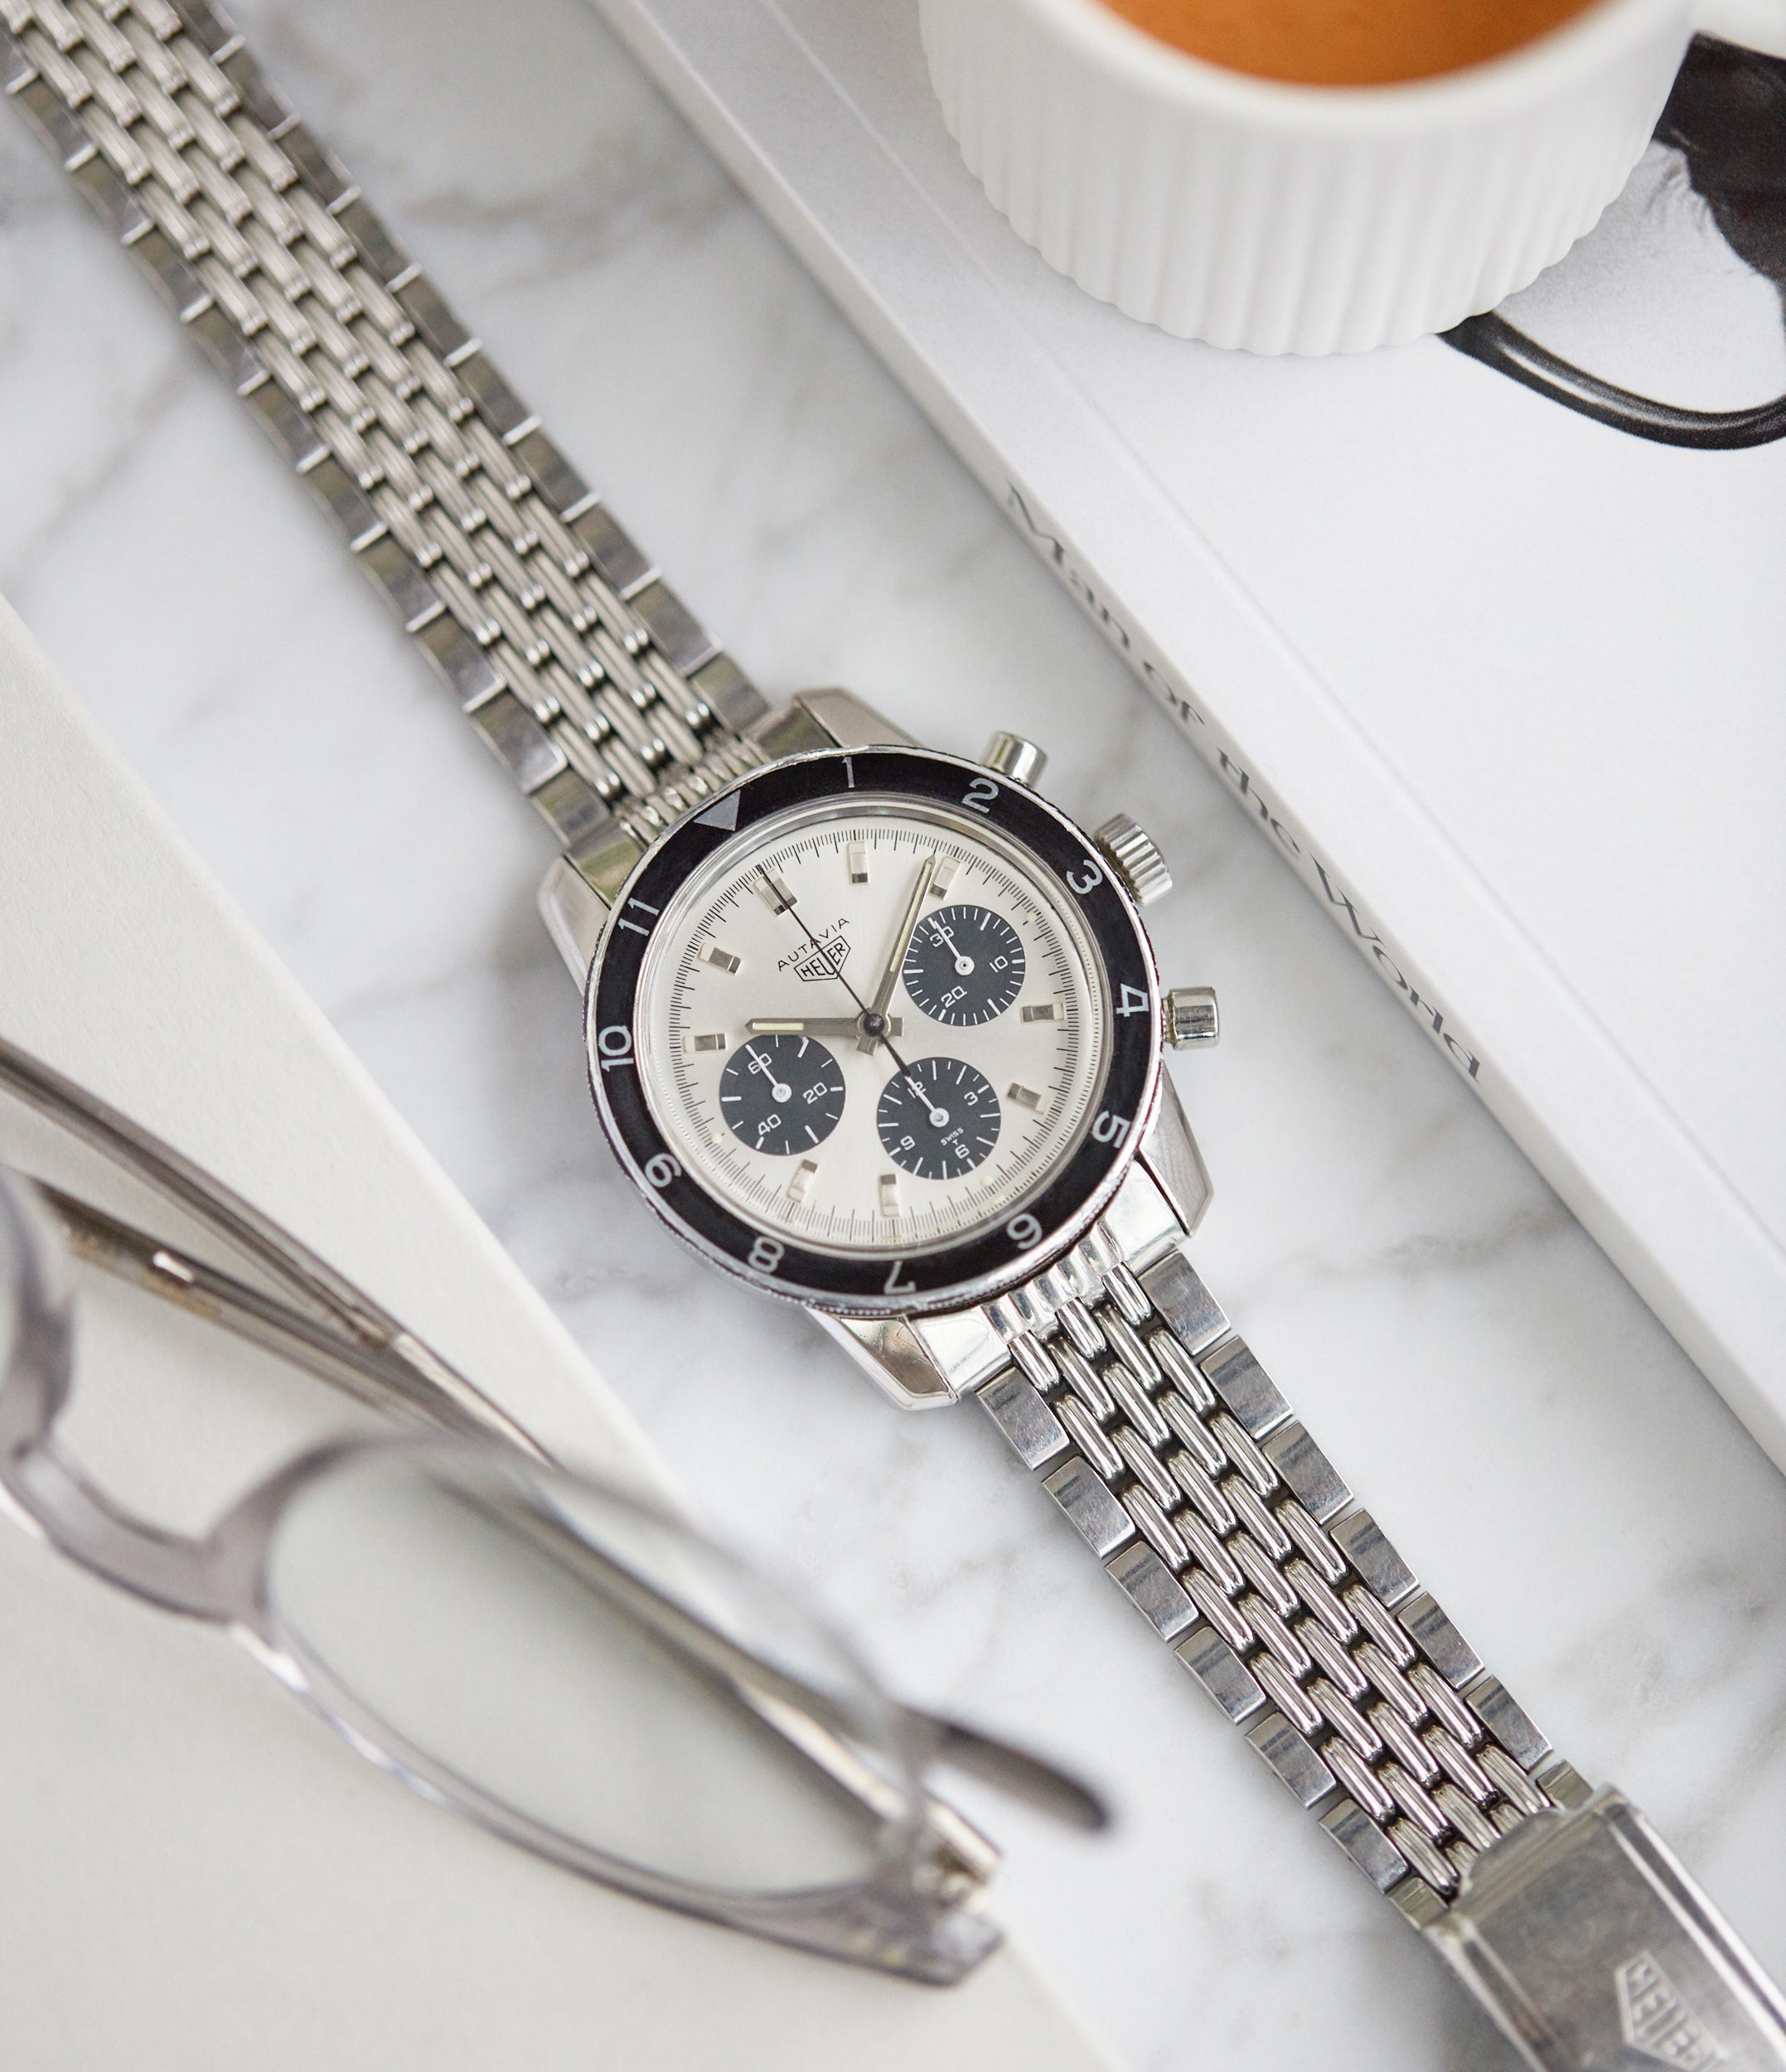 Autavia 2446 C SN Heuer silver dial rare chronograph test dial Valjoux 72 watch